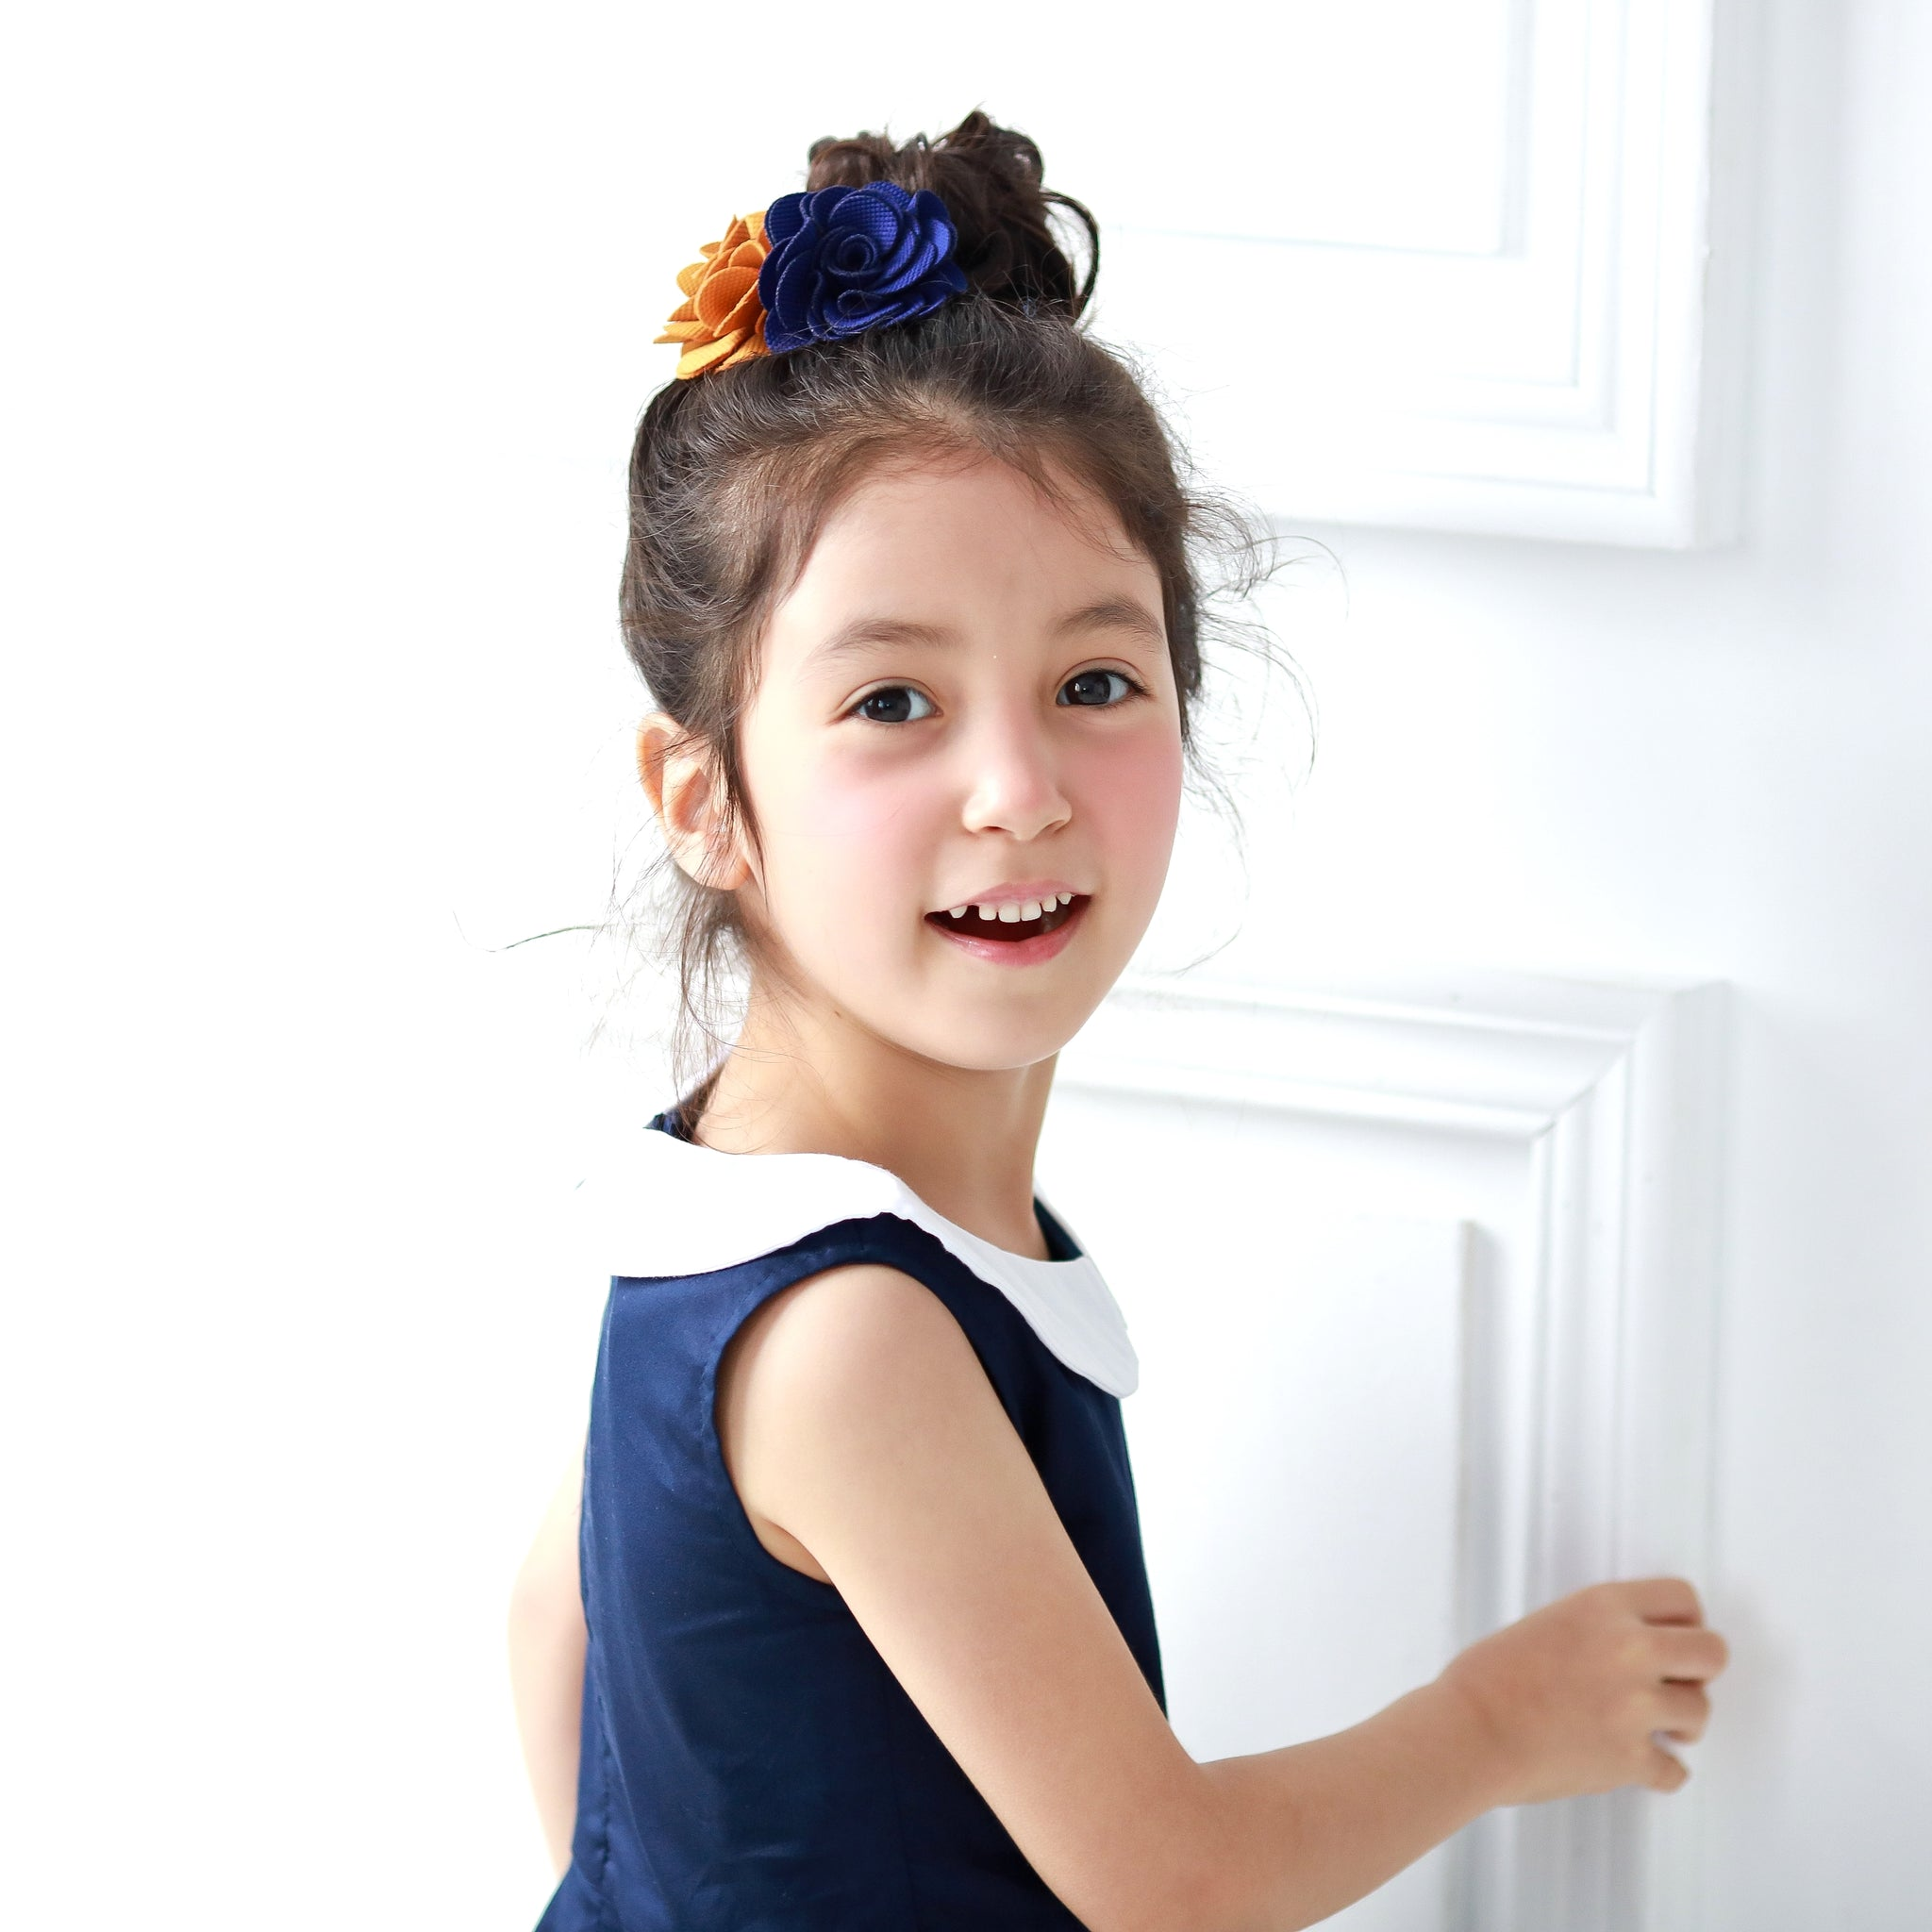 Cotton Dancing Bunny dress (blue) - Bunny n Bloom Mommy & Me Dress